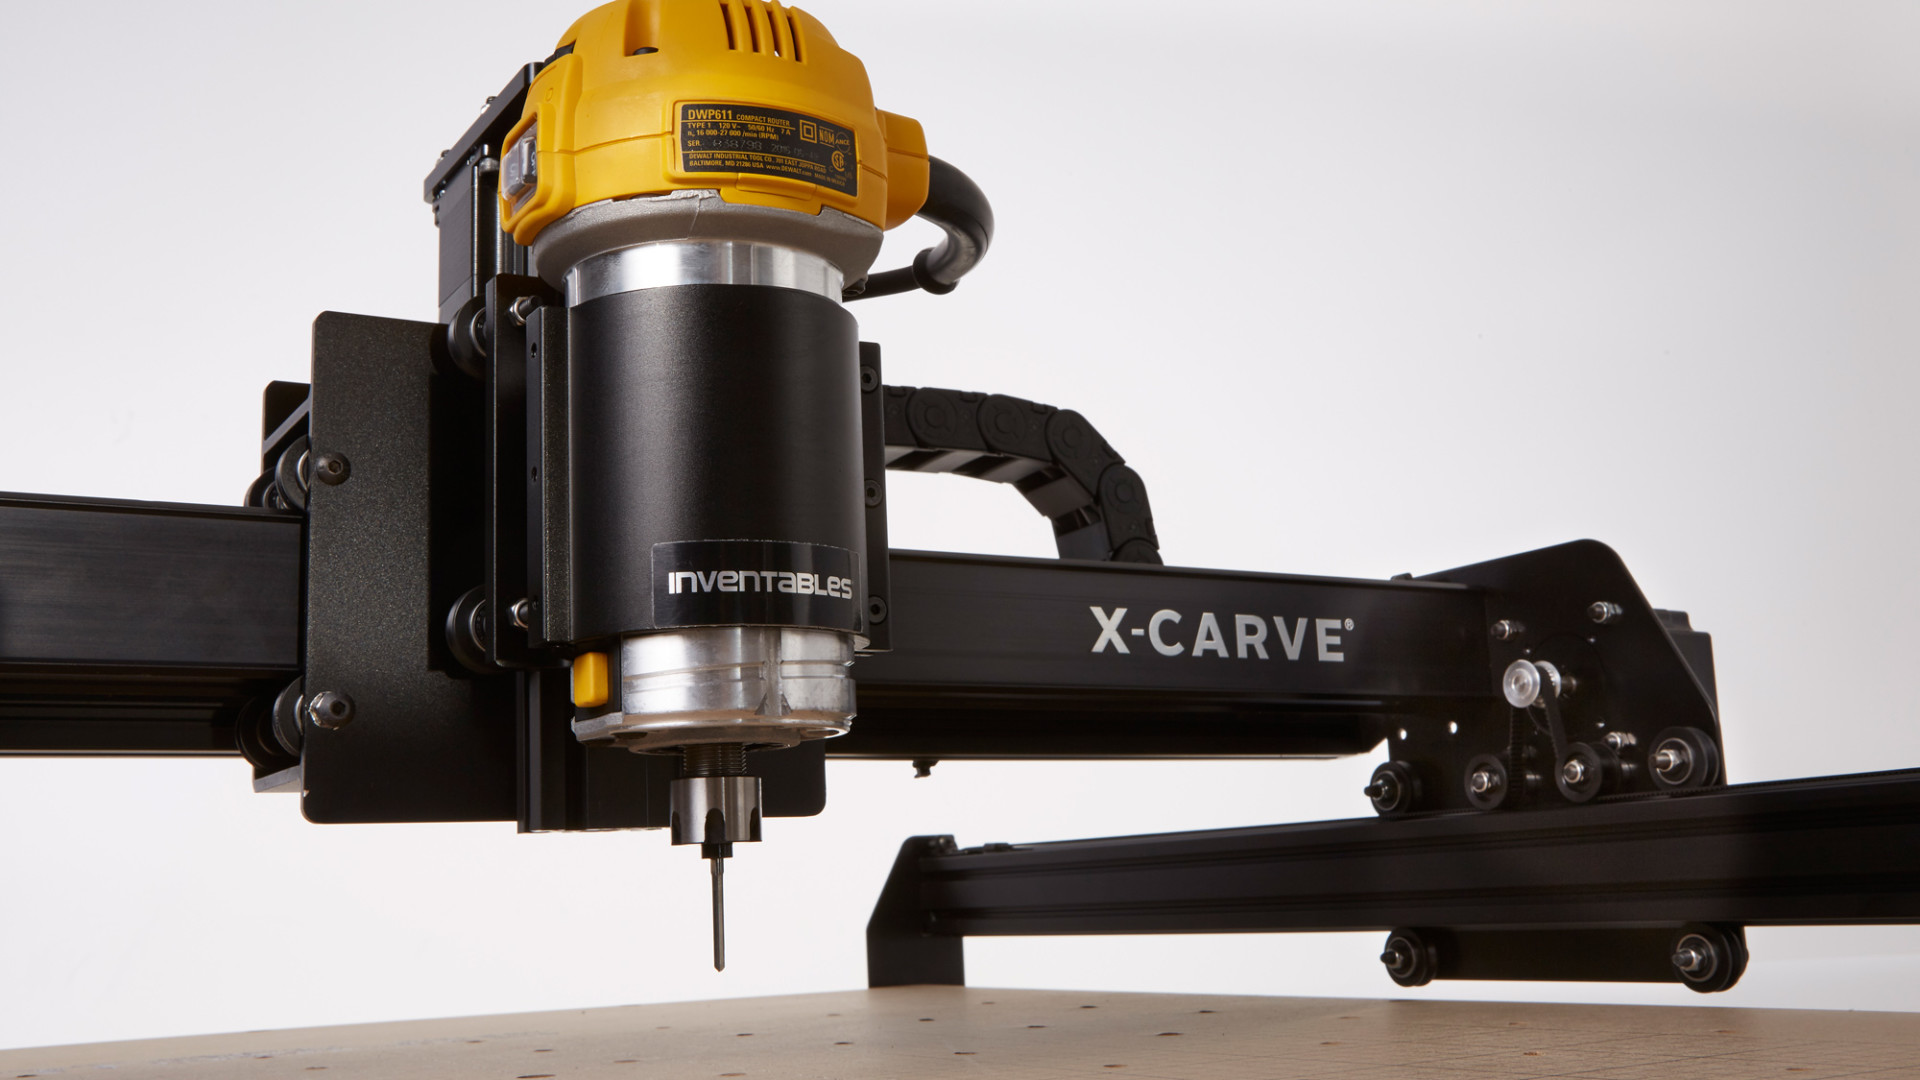 Inventables X-Carve: Review the Specs | All3DP